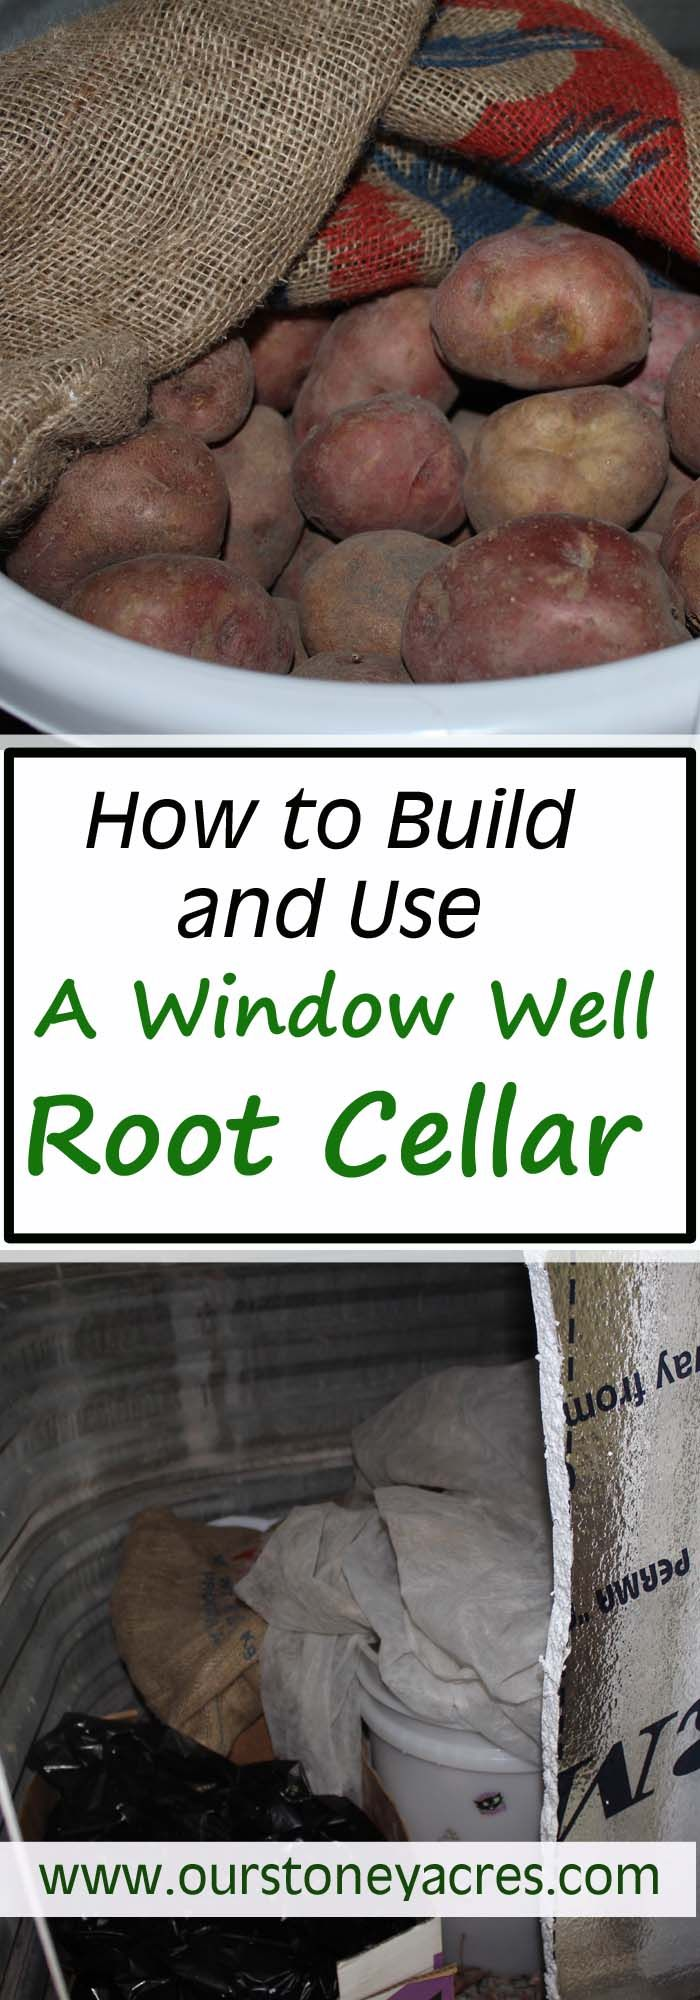 A Window Well Root Cellar is turning out to be a pretty effective way to store out potatoes over the winter.  All you need to get started is a window well that doesn't face south.  Then you can store your garden produce all winter.  Click on this post to learn more about this food storage option!